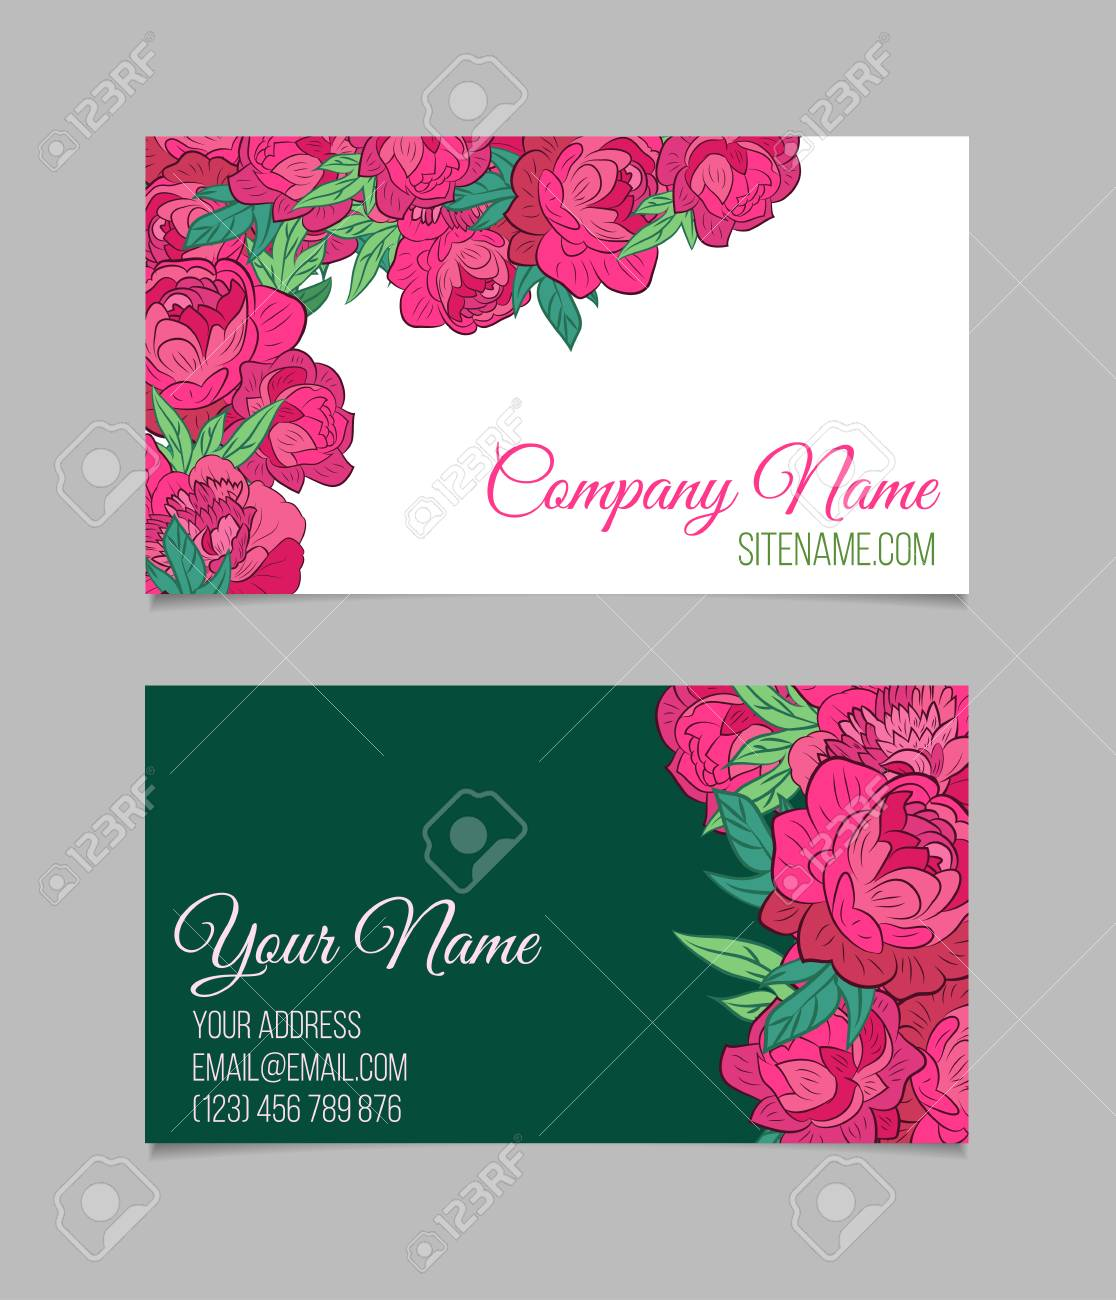 Double sided floral business card template with peonies on white double sided floral business card template with peonies on white and green backgrounds stock vector fbccfo Images